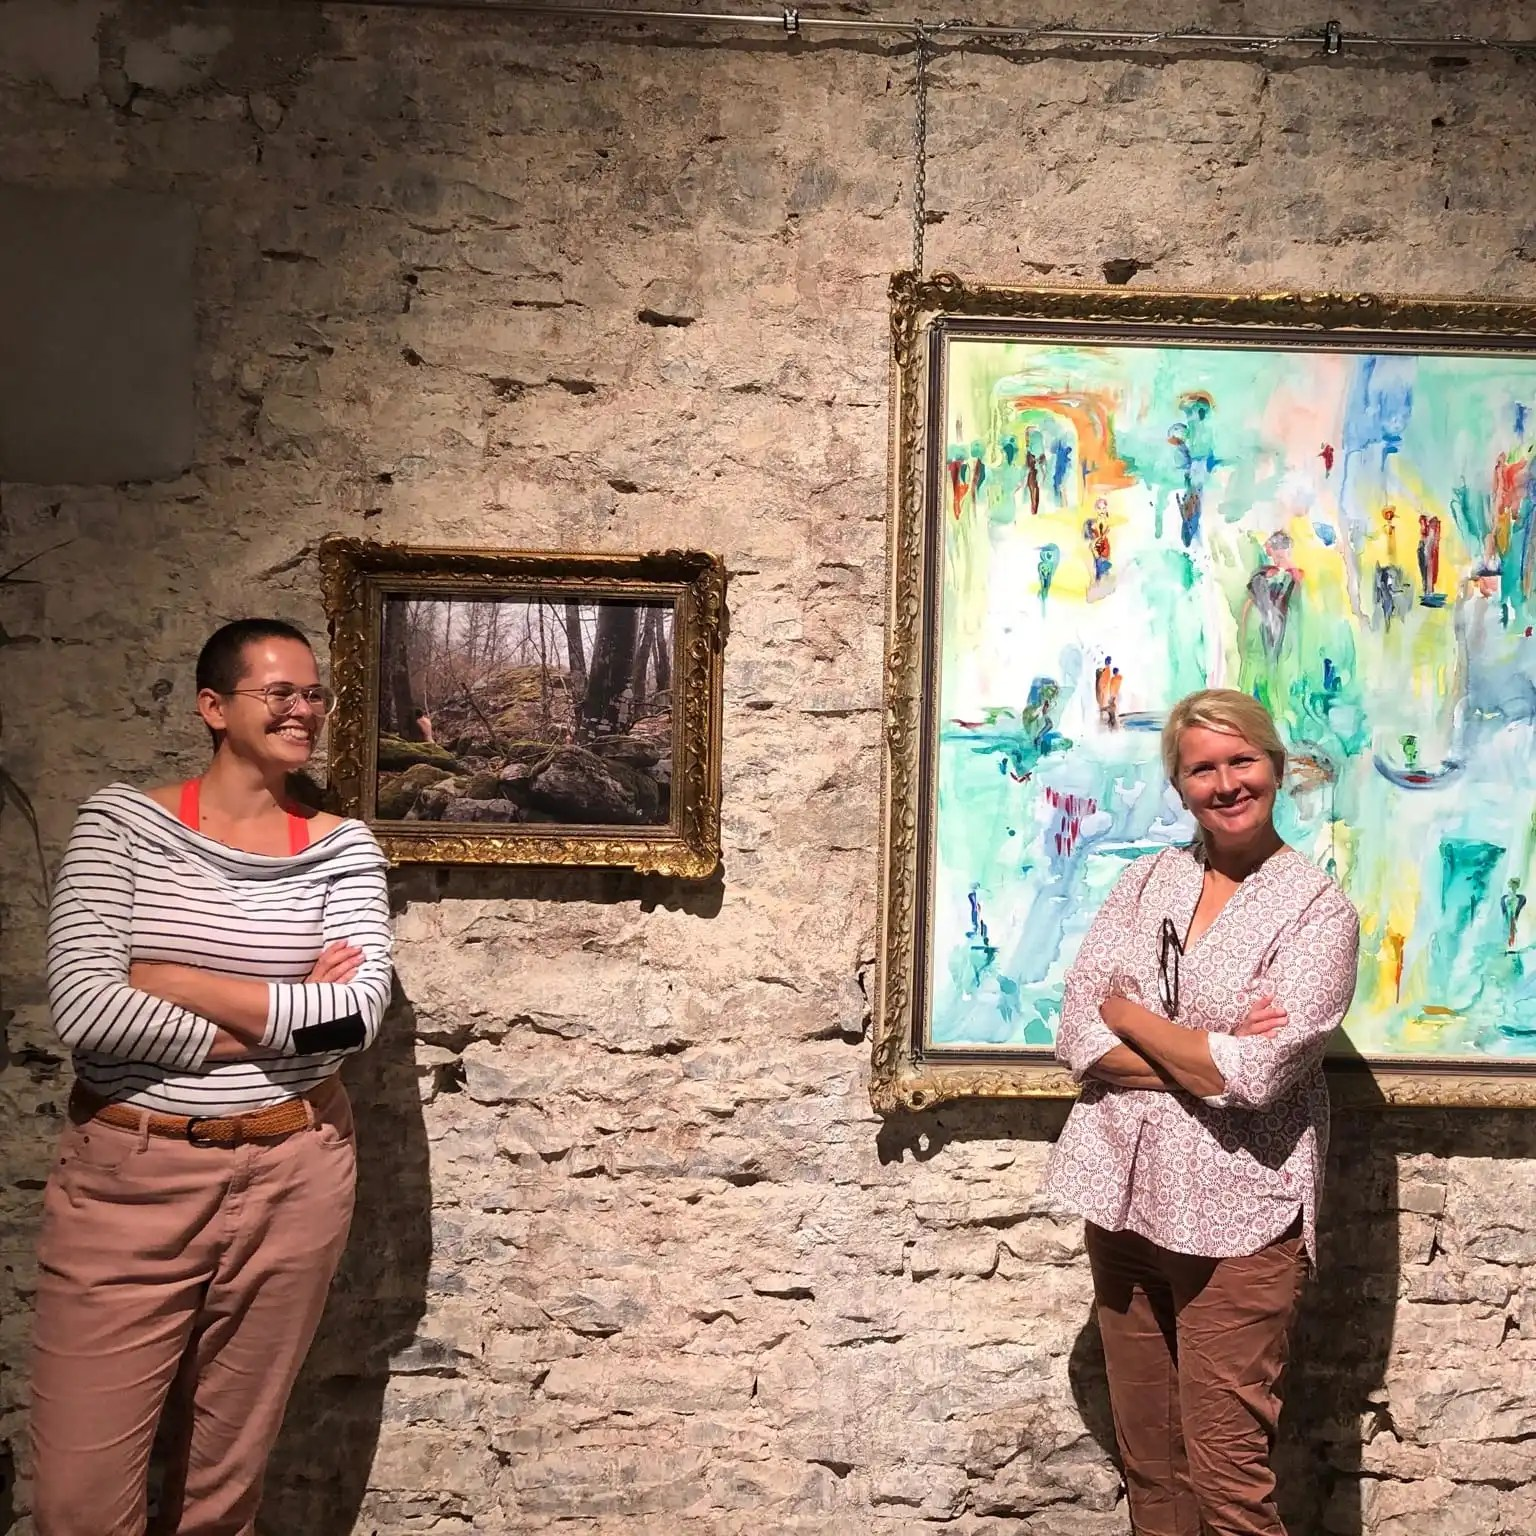 Finissage – Acryl meets Foto